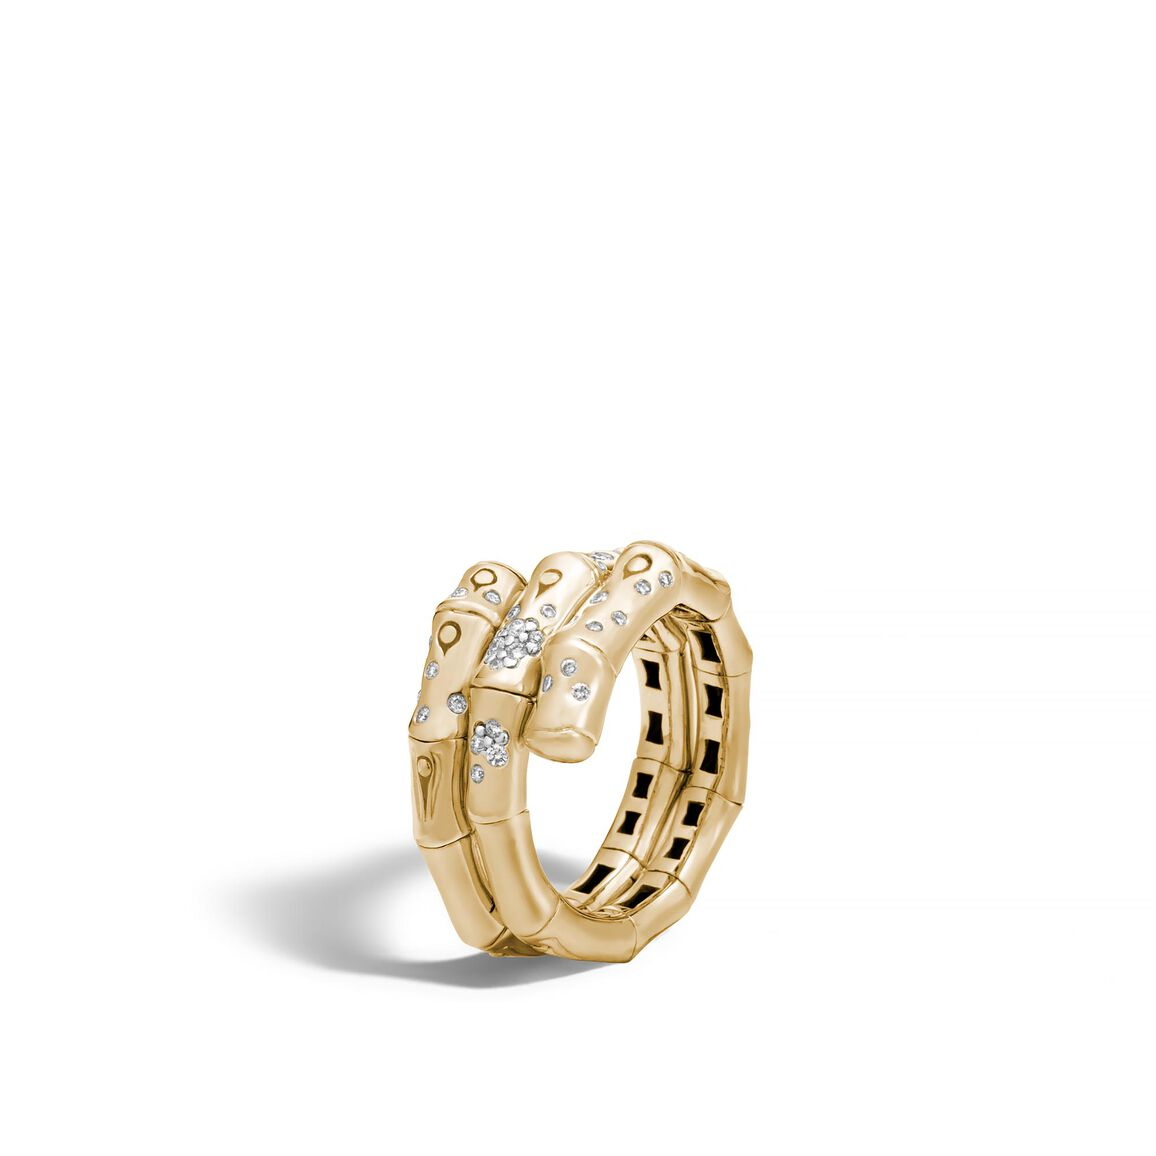 Bamboo Coil Ring in 18K Gold with Diamonds